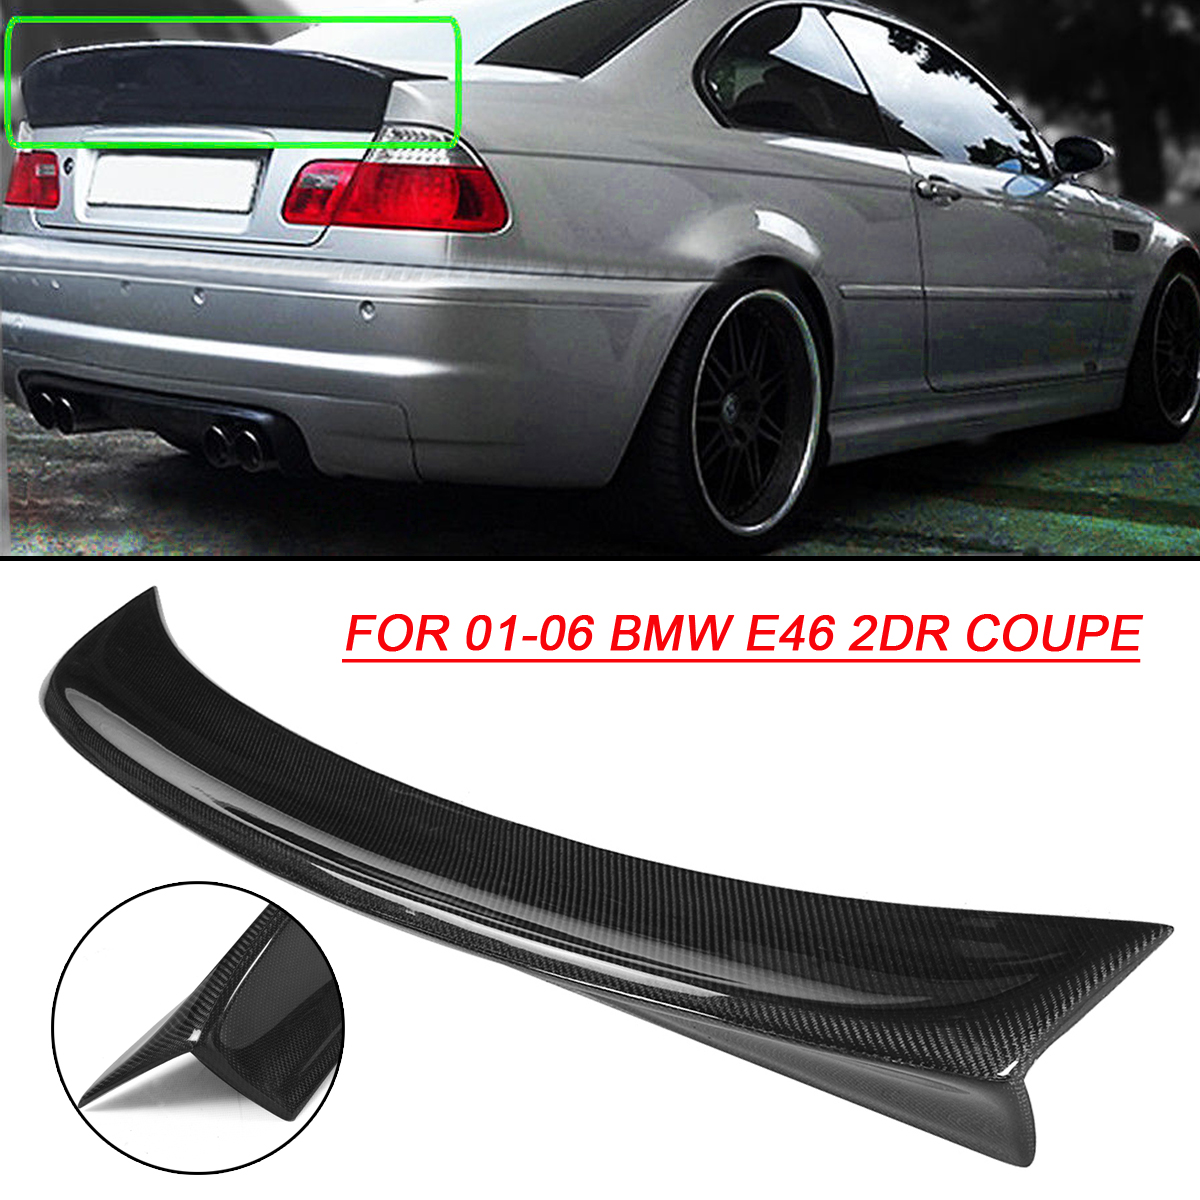 Rear Boot Trunk Csl Style Carbon Spoiler Ducktail Wing For Bmw 3 Series E46 Archives Statelegals Staradvertiser Com